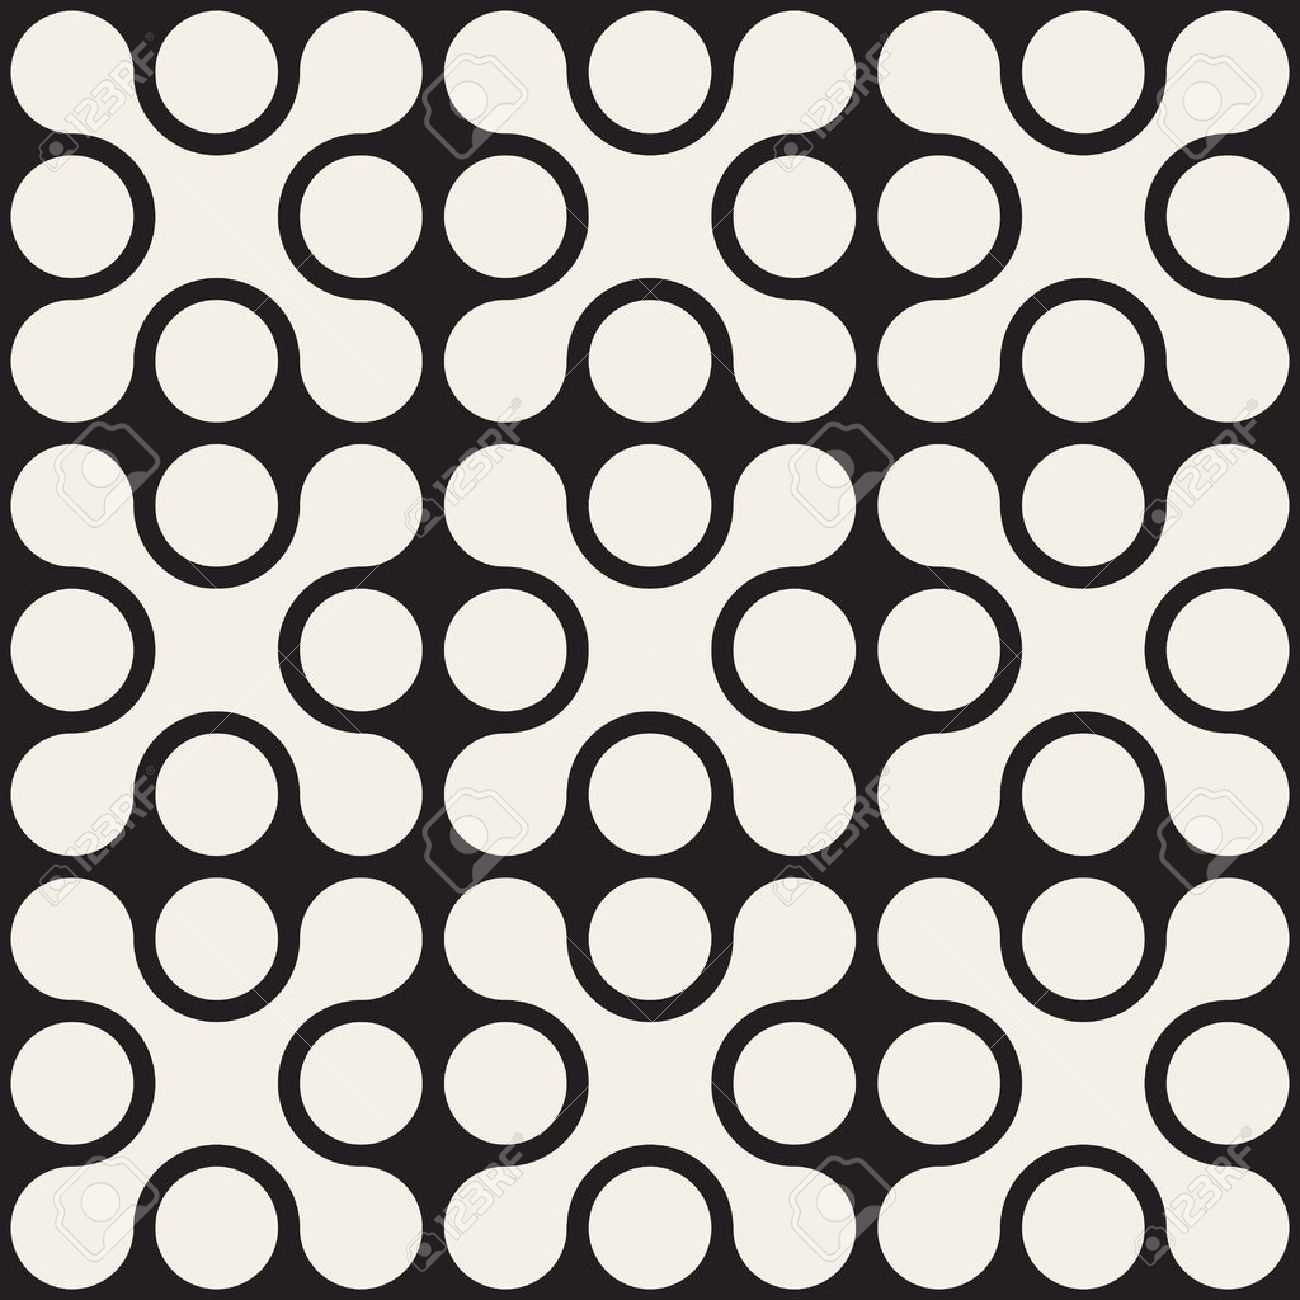 Vector Seamless Black And White Rounded Cross Square Pattern Abstract Background - 47484014